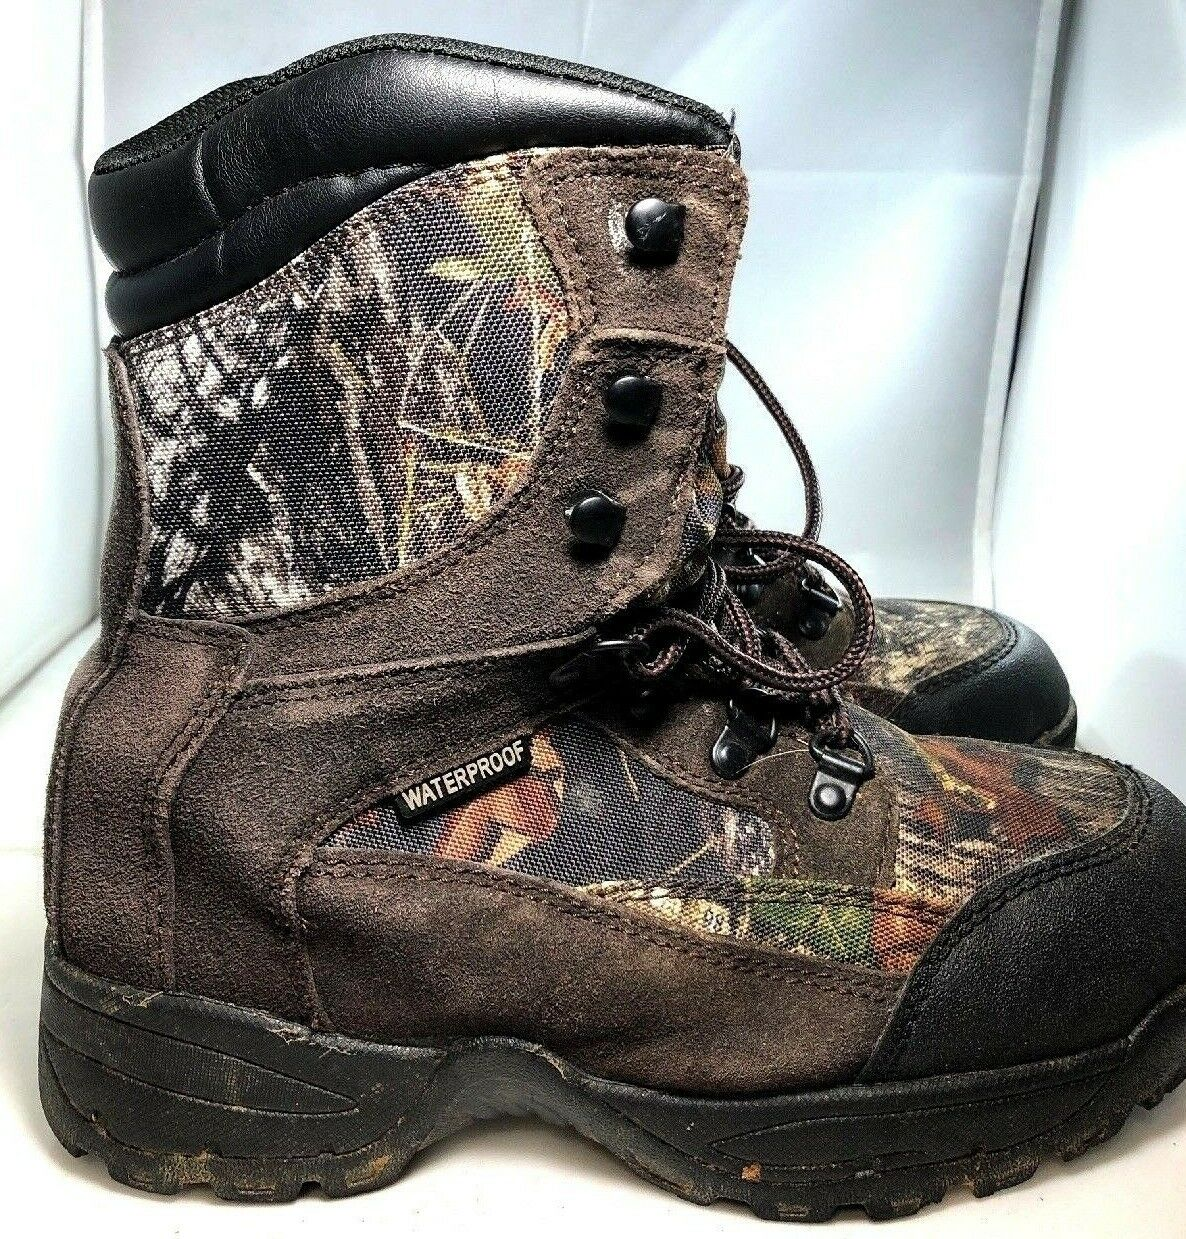 40a782700a560 Texas Steer Kirit Mens Insulated Waterproof Camouflage Boots Sz 7.5 EUC  (S33)